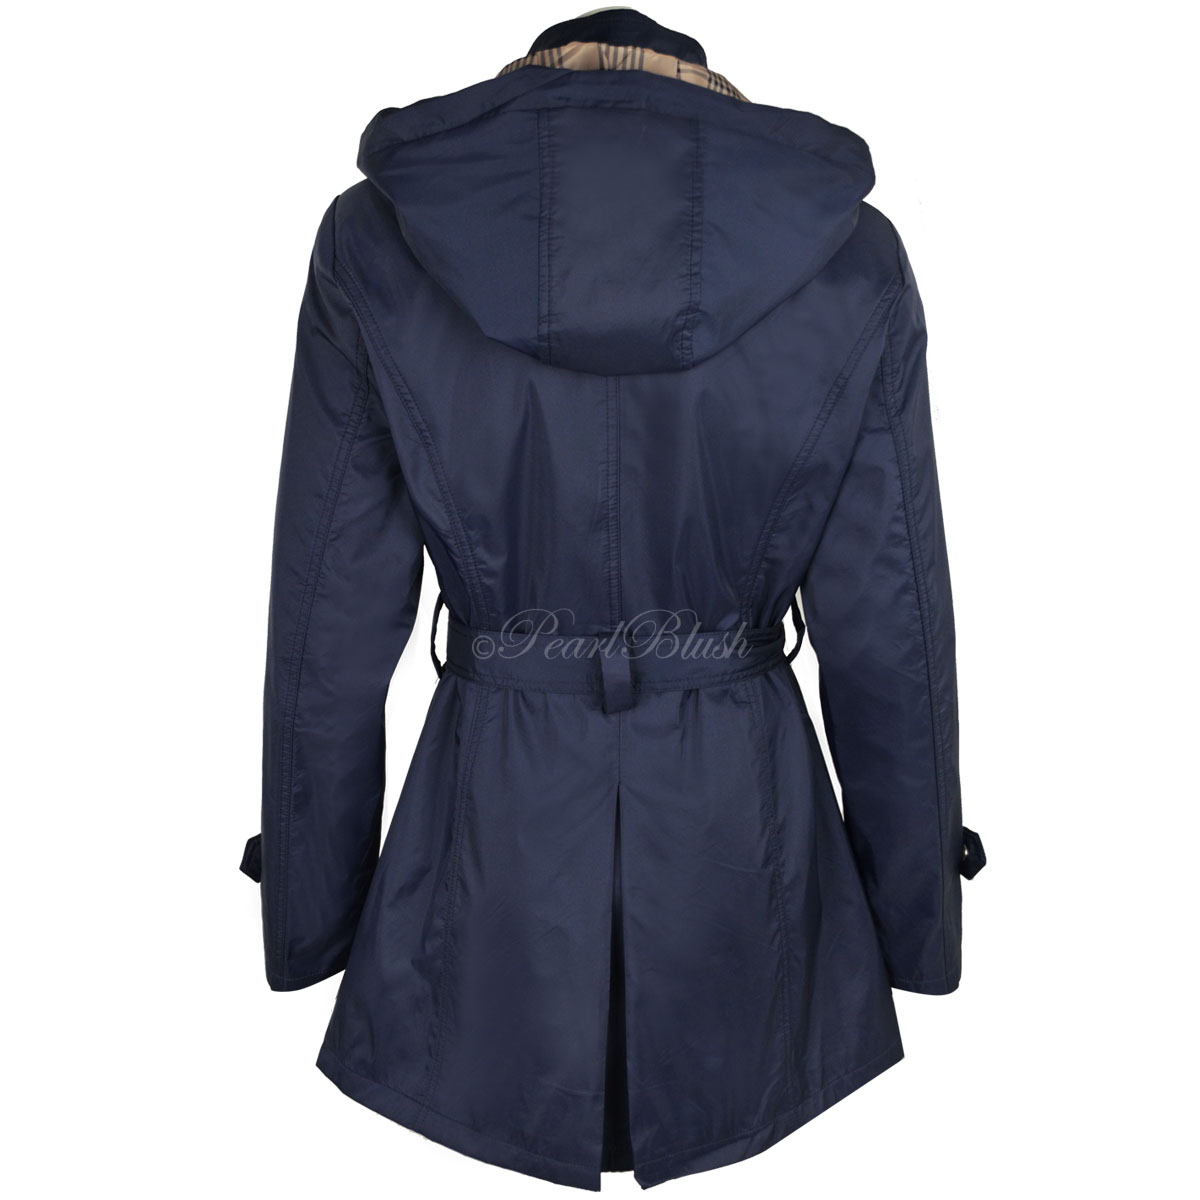 Find great deals on eBay for womens summer coats. Shop with confidence.